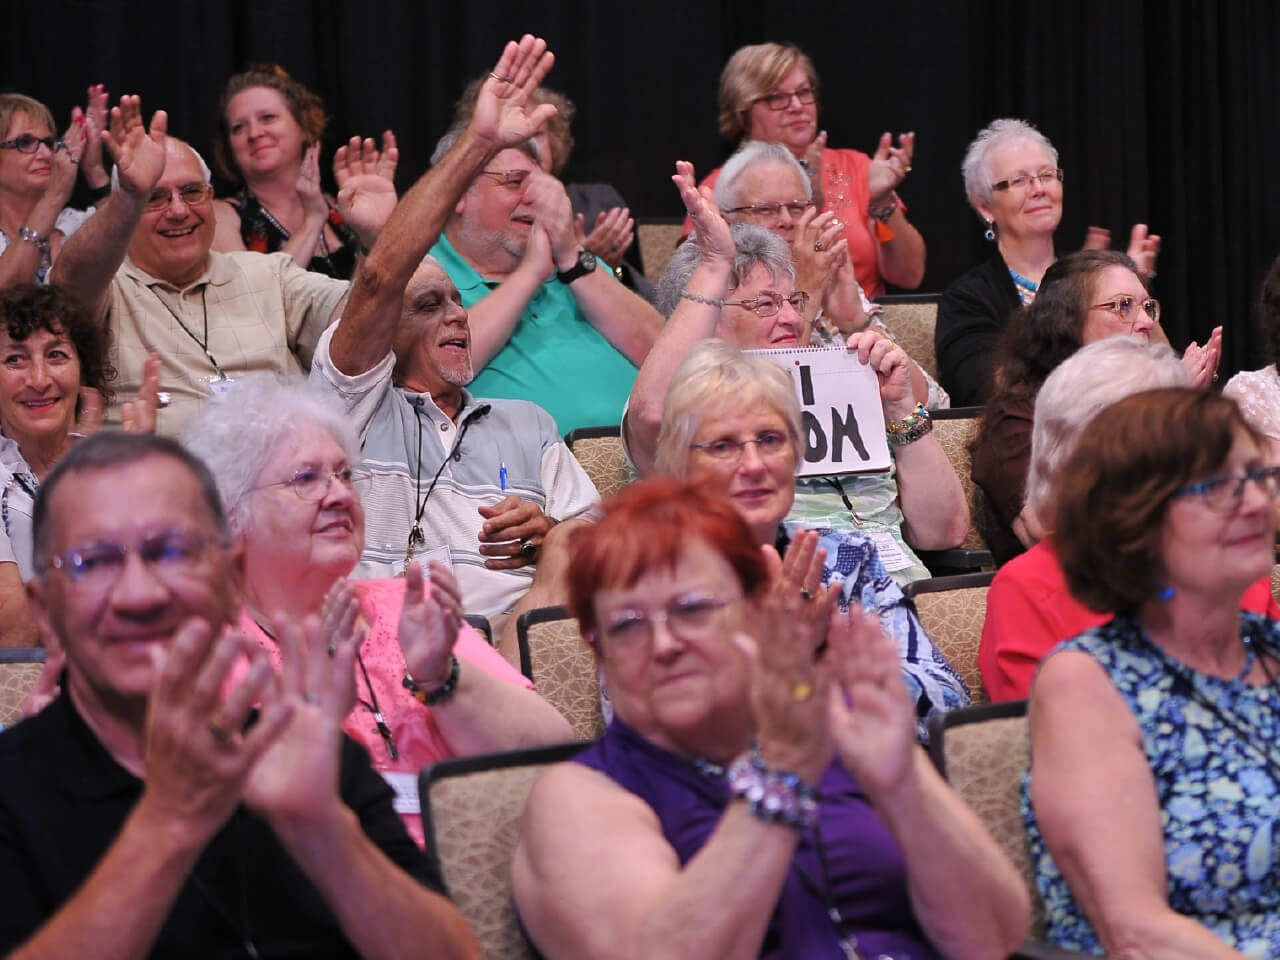 Live show audience clapping